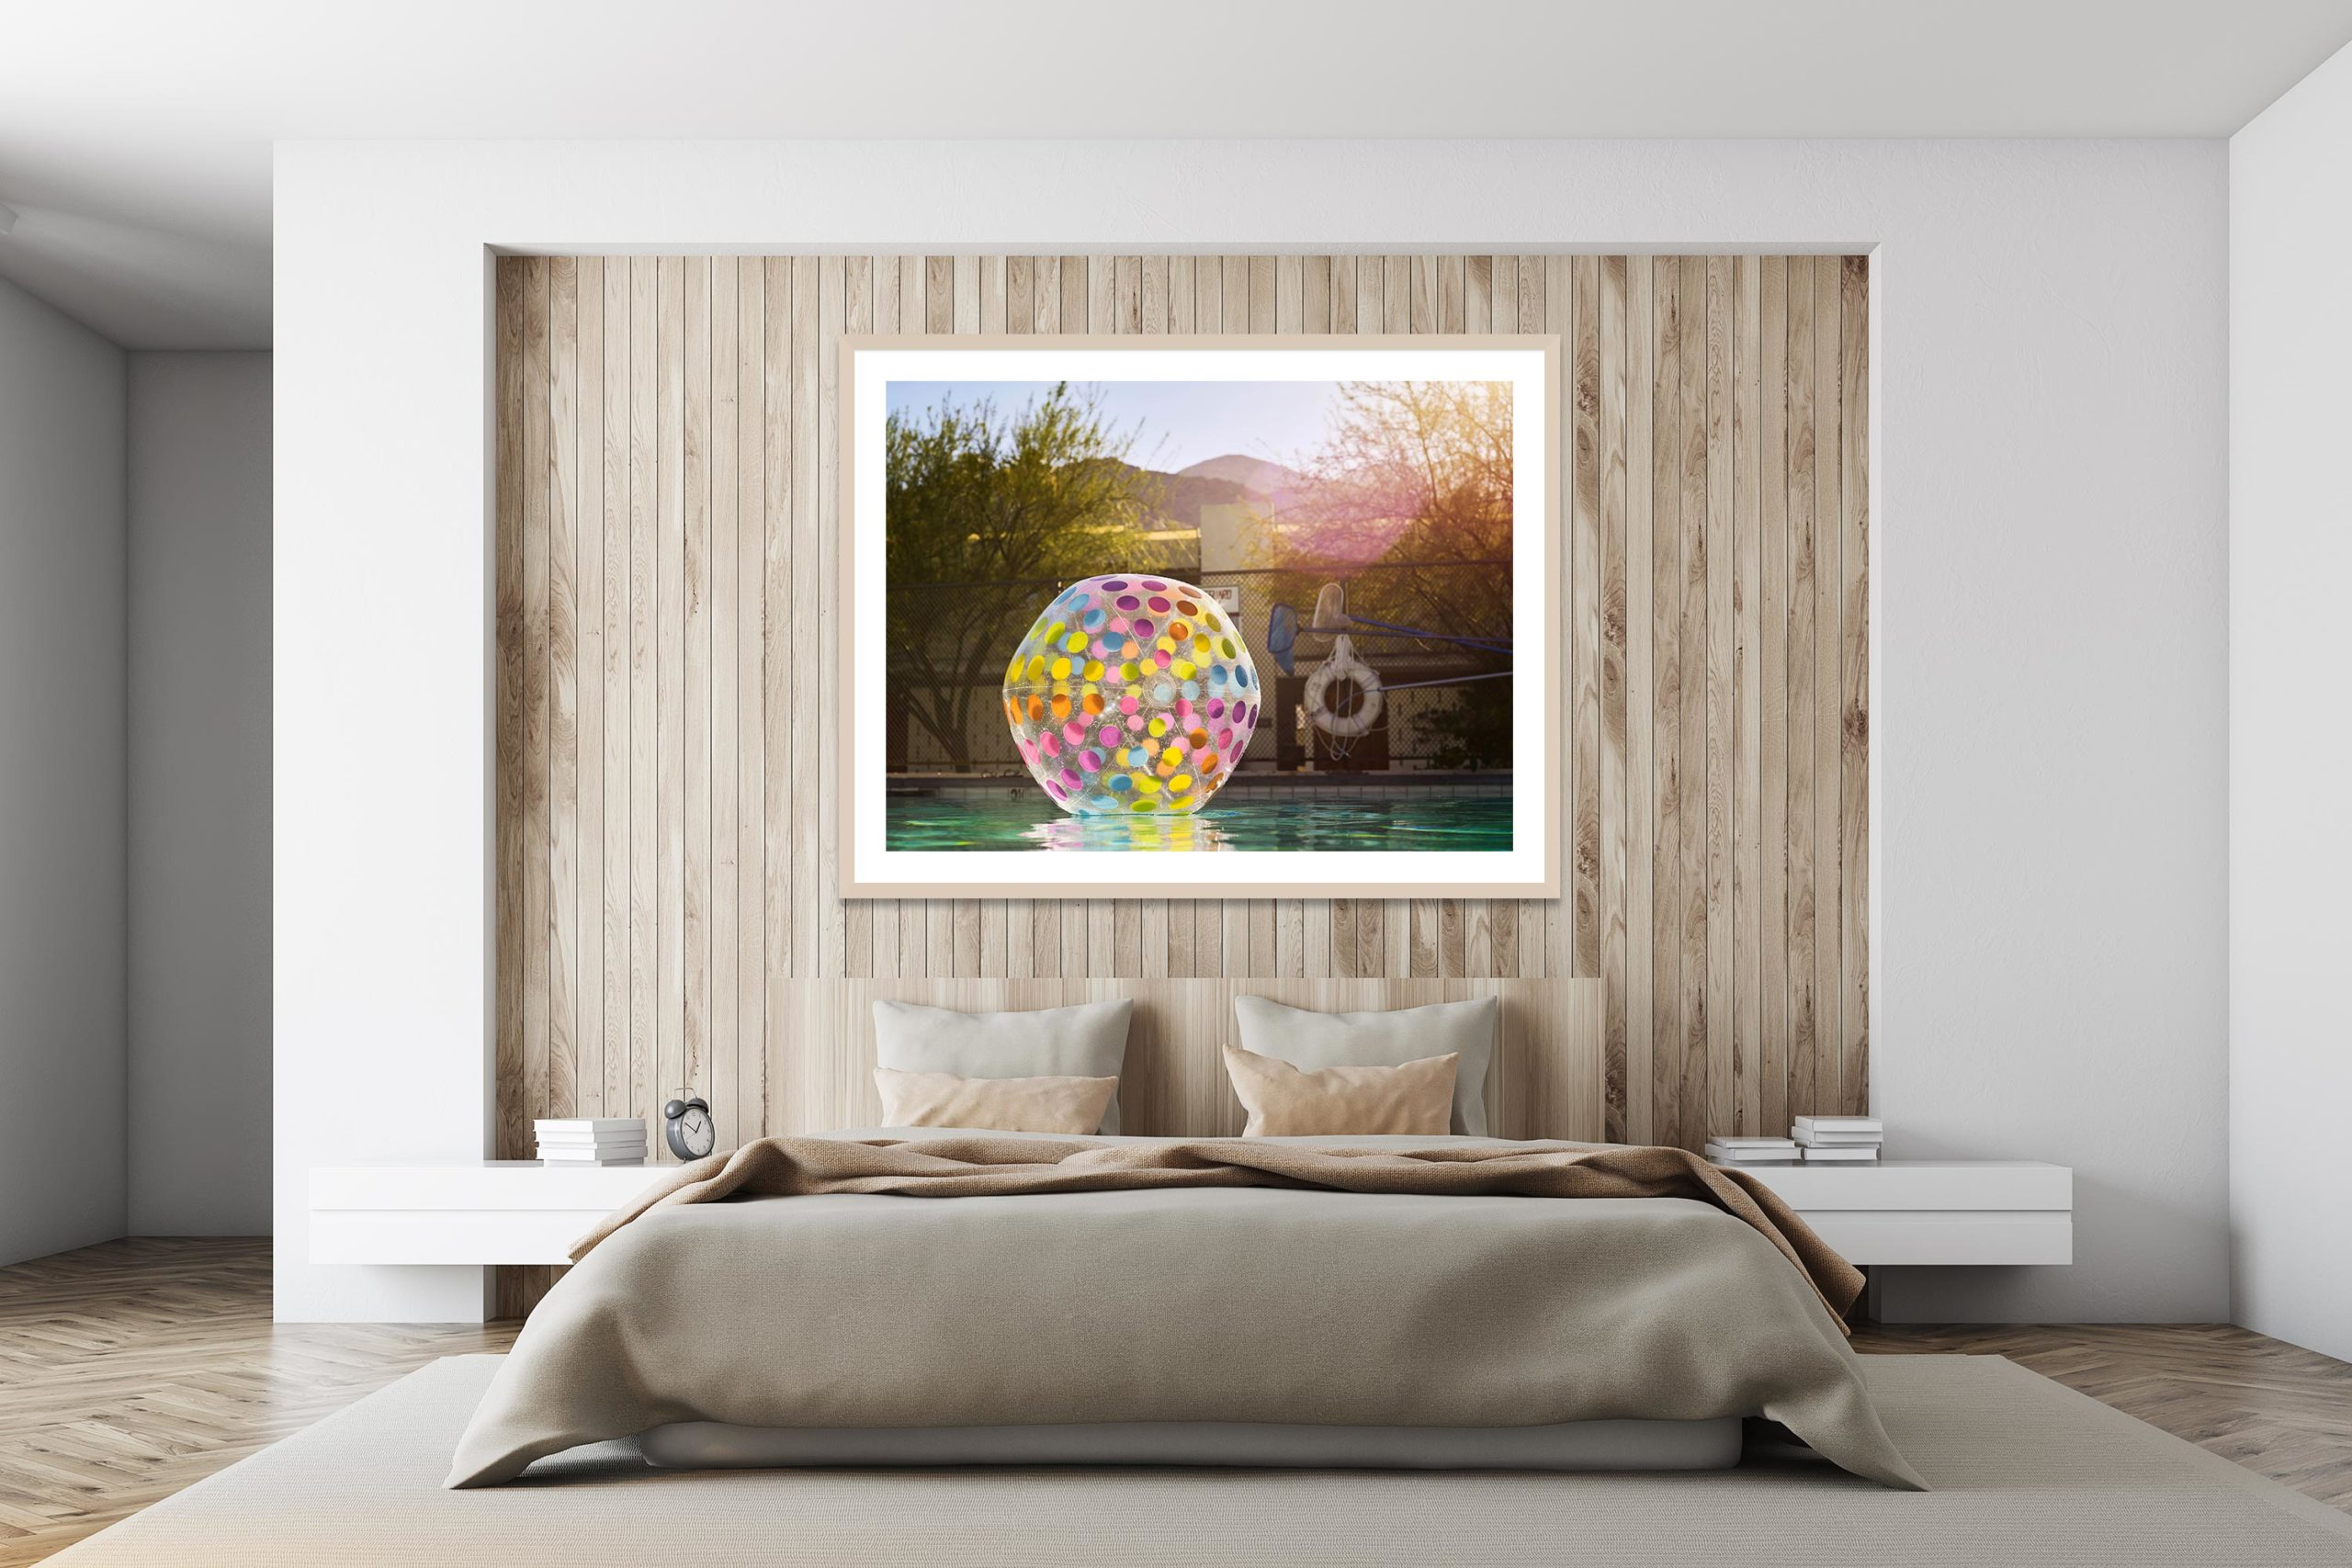 Apres Apres - Timber Frame - I Heart Palm Springs Collection - Fine Art Photography by Toby Dixon